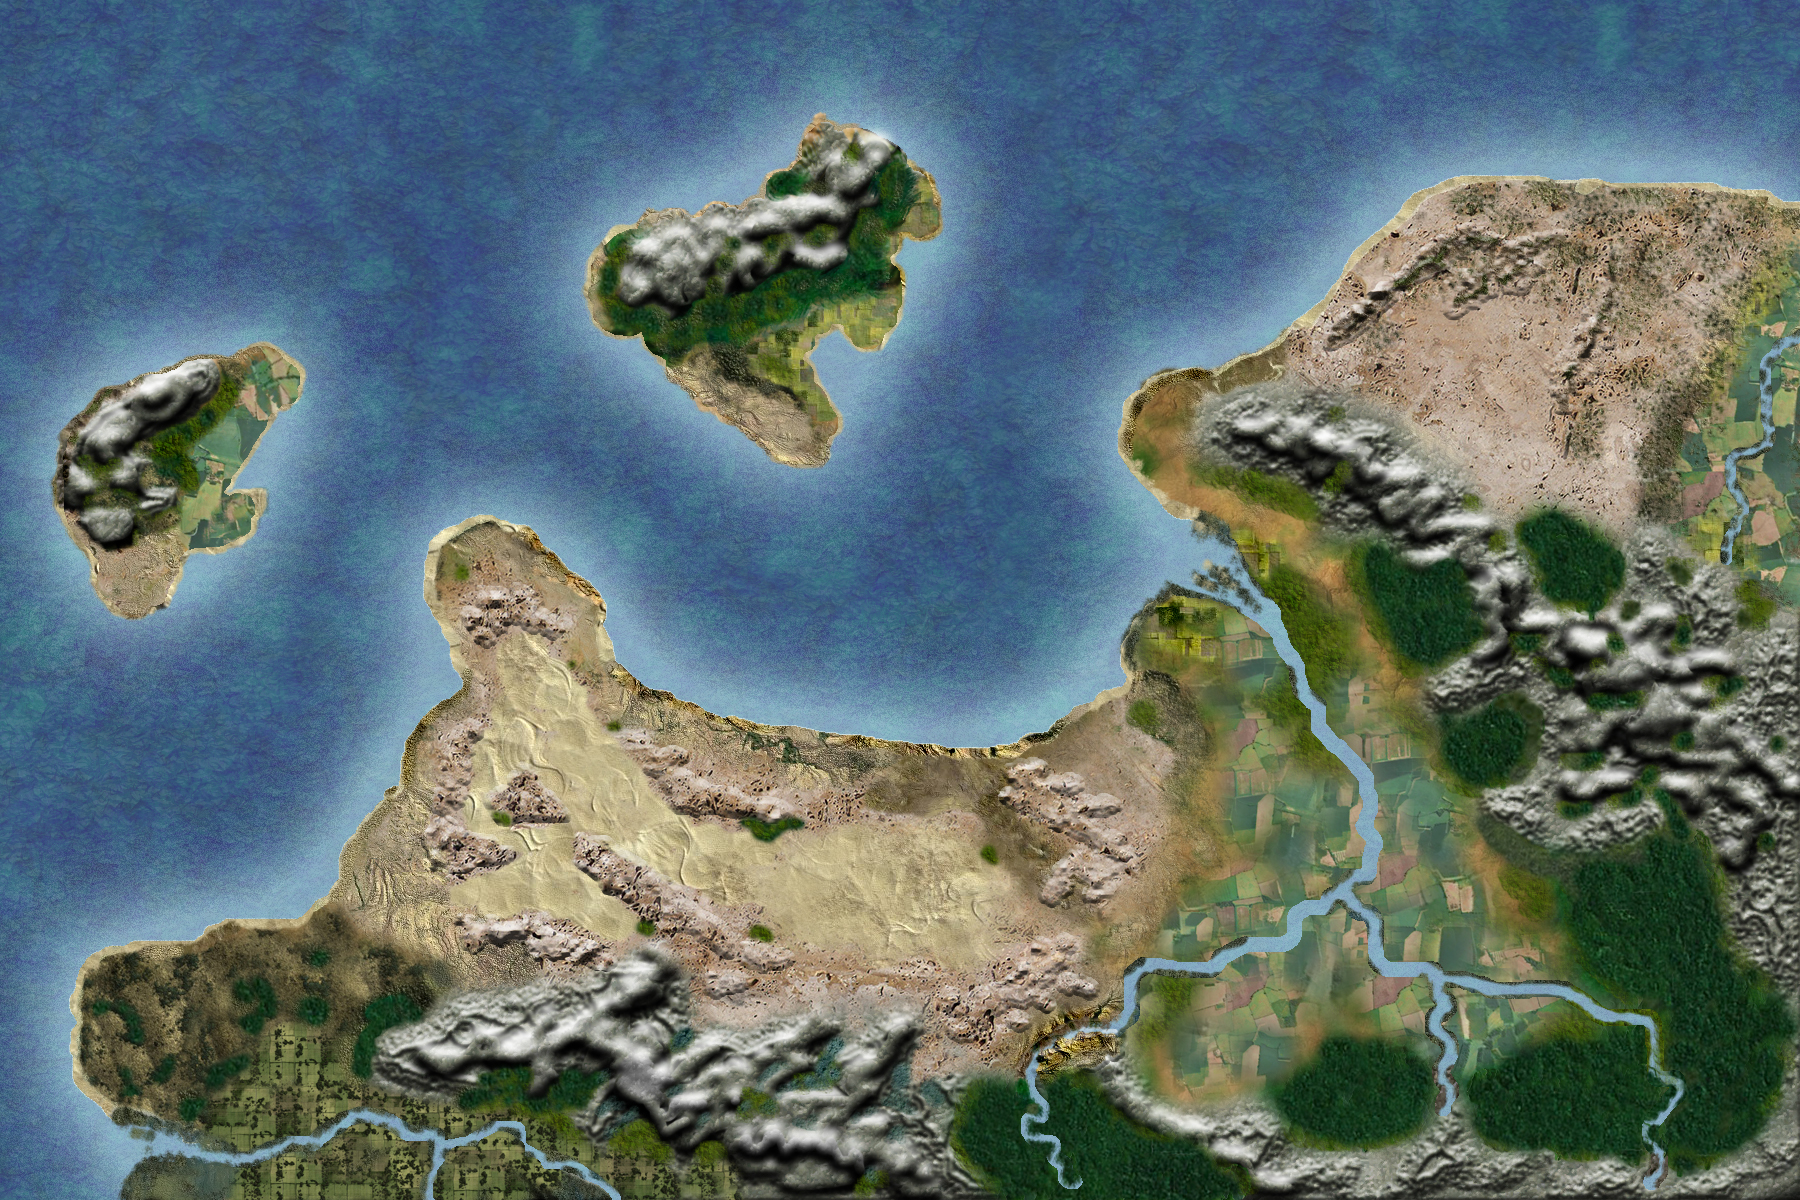 Fanid - a land and a desert. One of the seven lands from my imaginary continent.